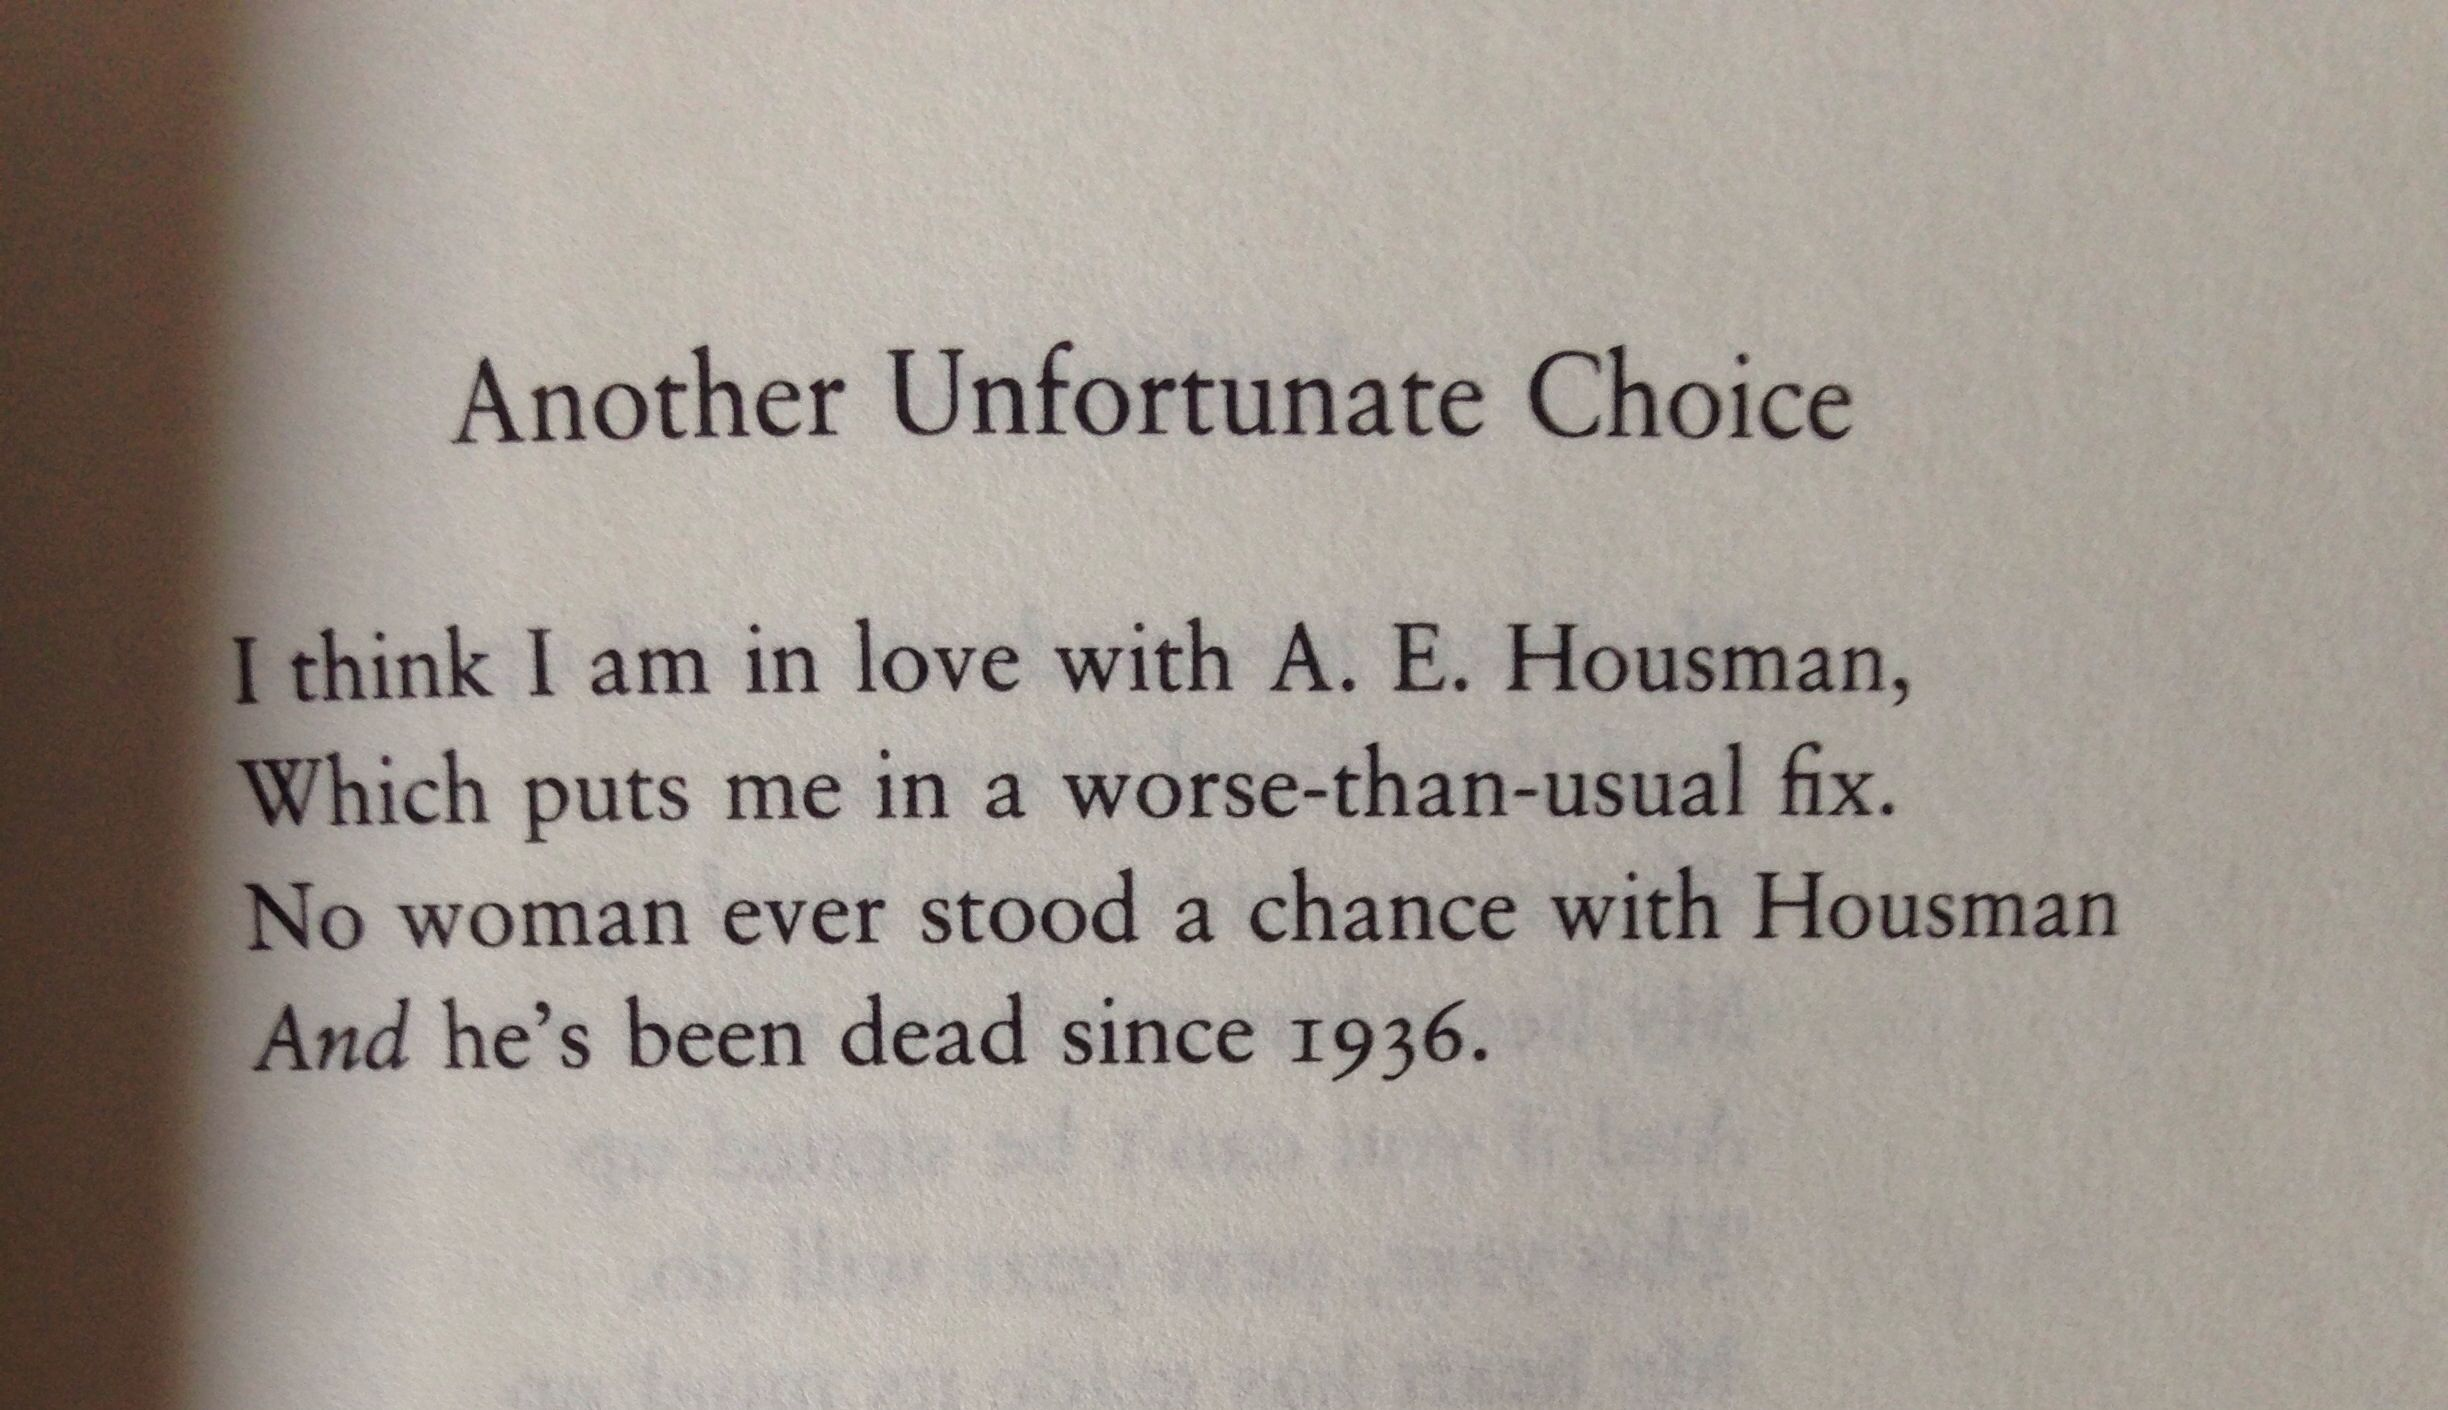 'Another Unfortunate Choice' - Wendy Cope